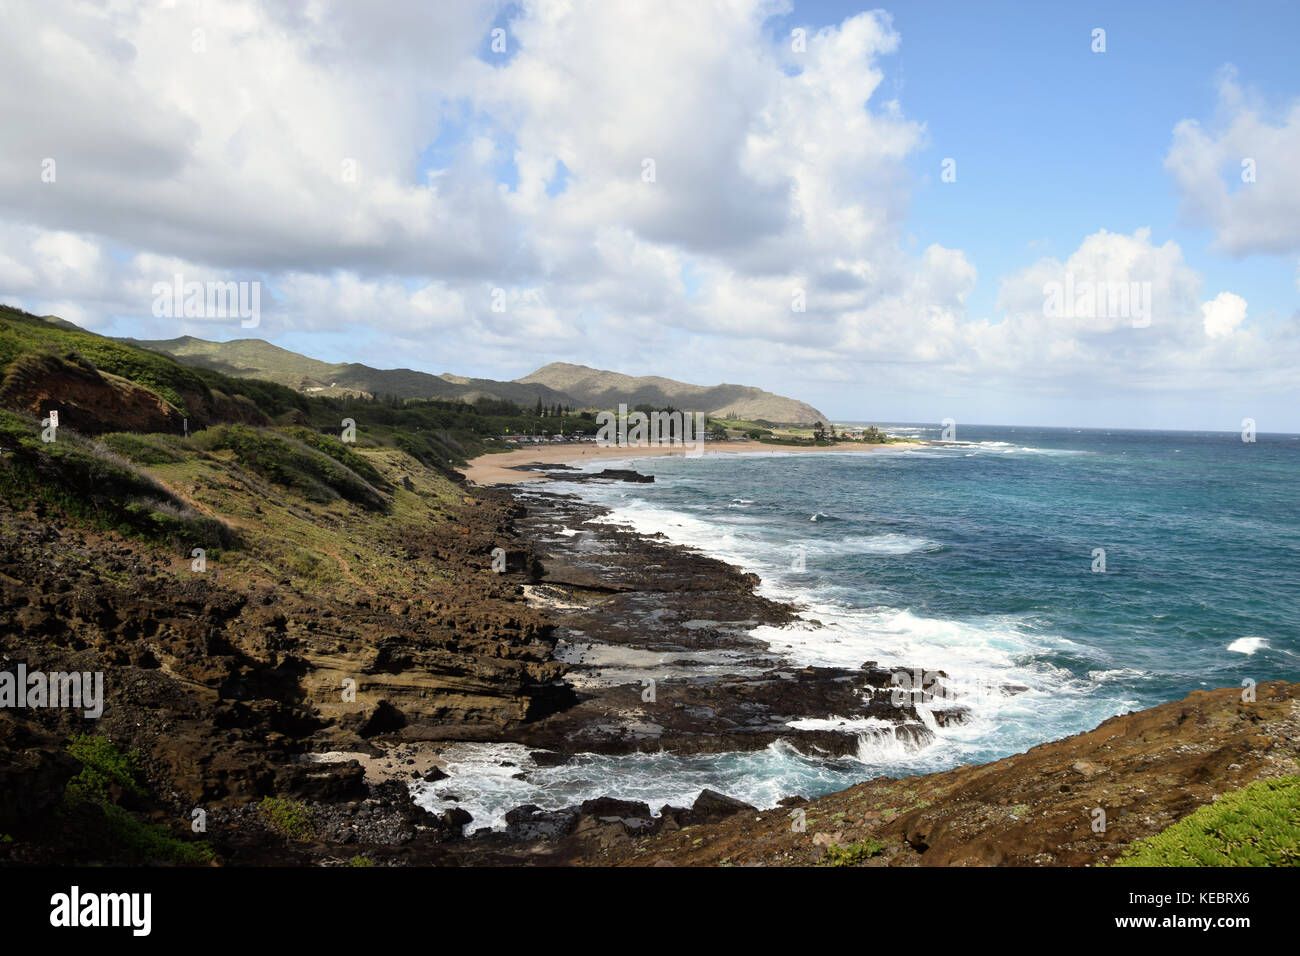 View of Sandy Beach from the Halona Blowhole in SE Oahu, Hawaii - Stock Image